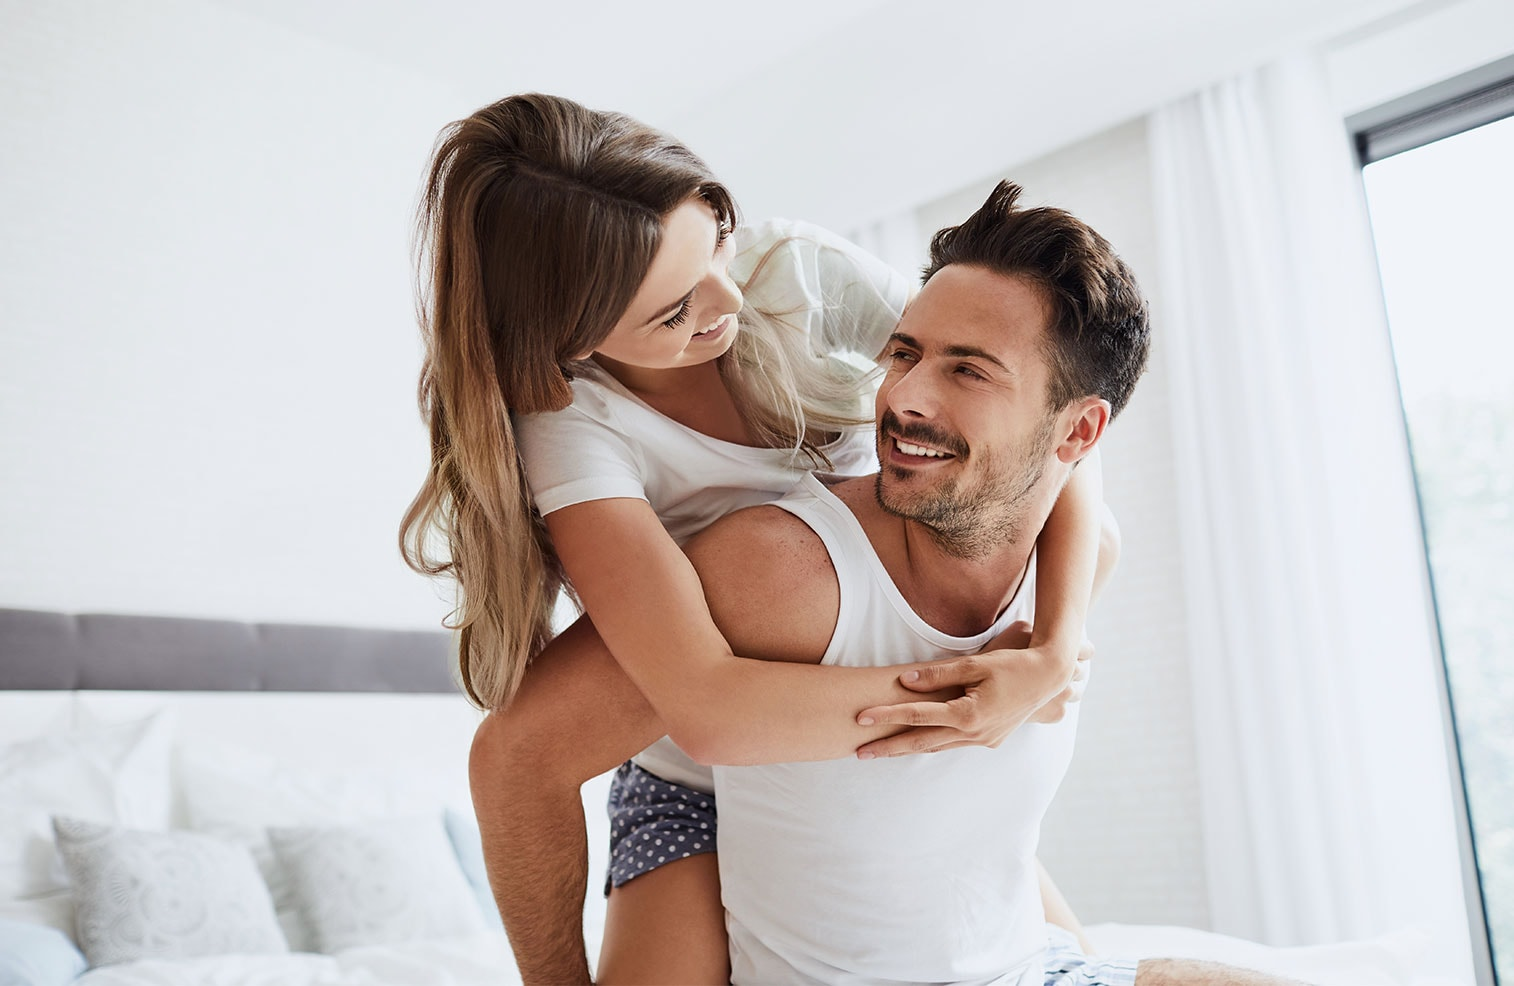 Sick of asking your husband 'How was your day?' and other boring questions? Kick off some awesome conversations with these 55 Questions to Ask Your Husband.